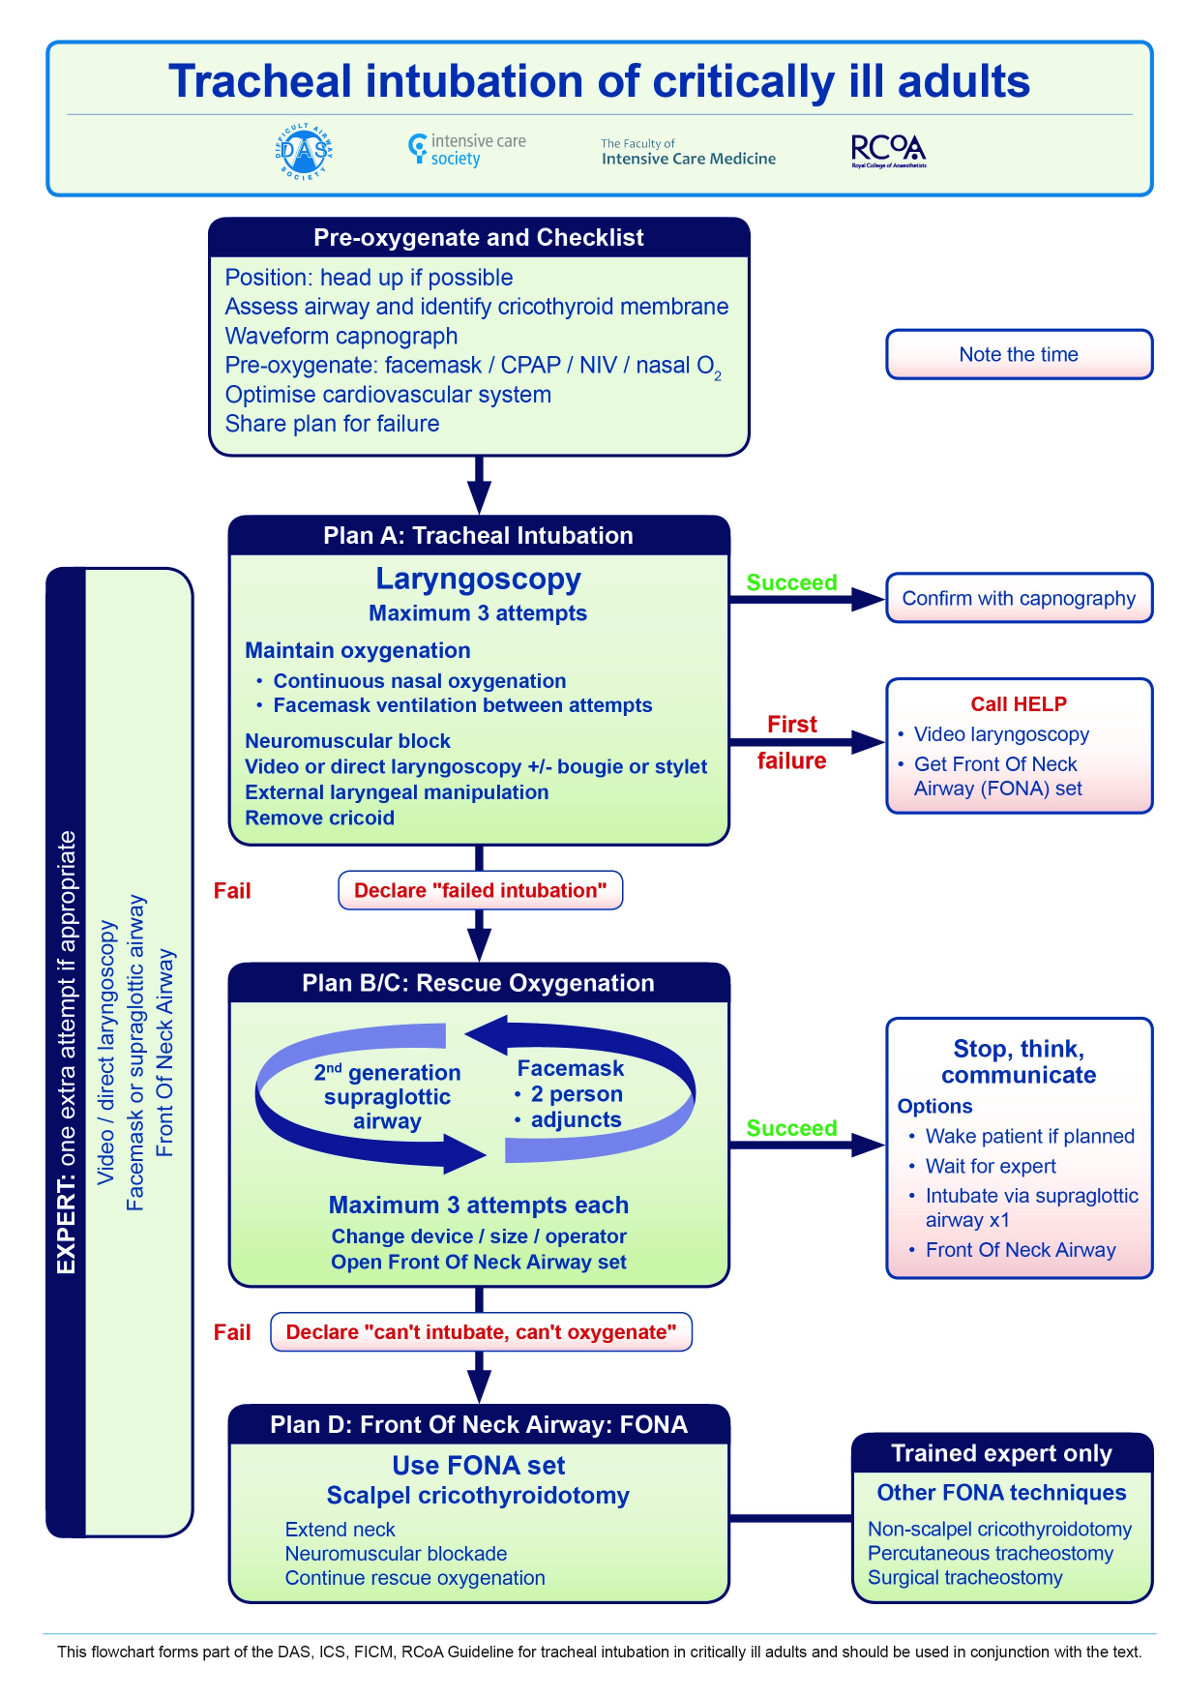 DAS guidelines for management of tracheal intubation in critically ill adults - Algorithm 1